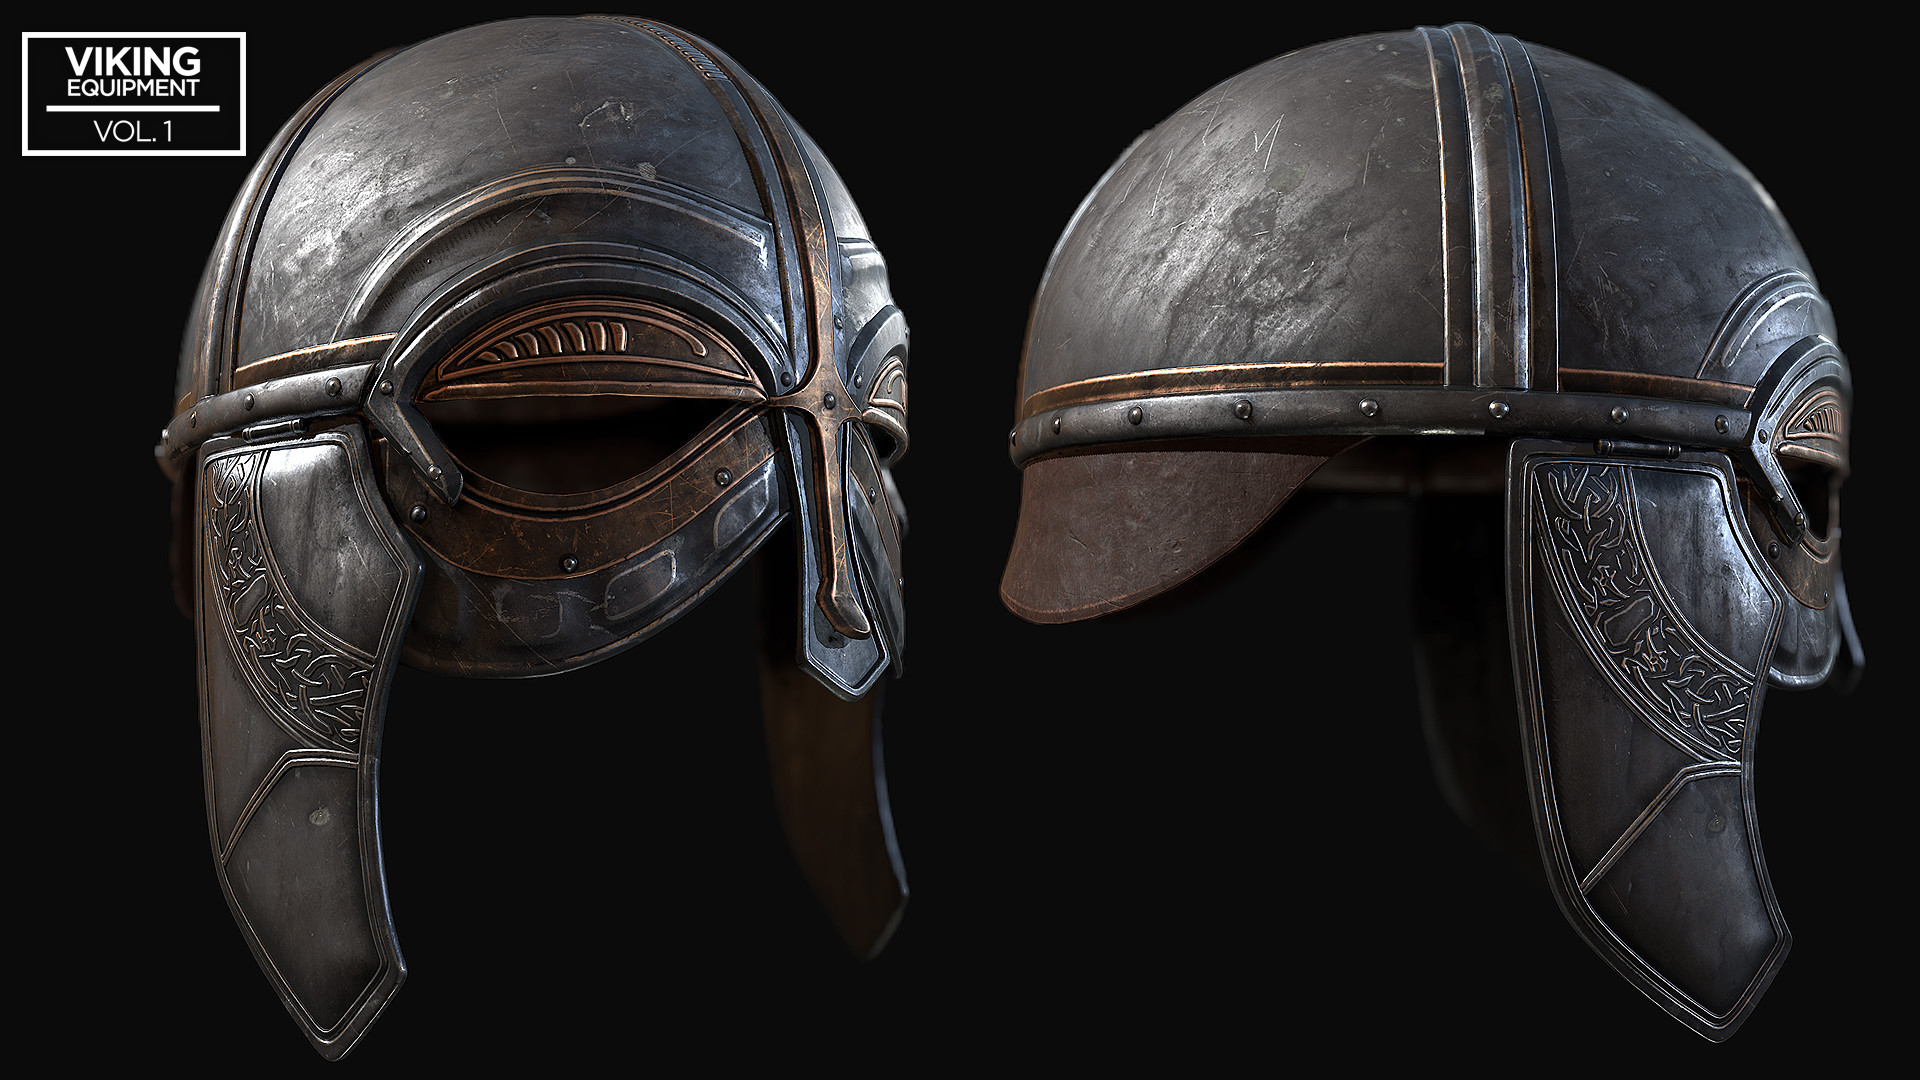 Helm (Based on several sources)